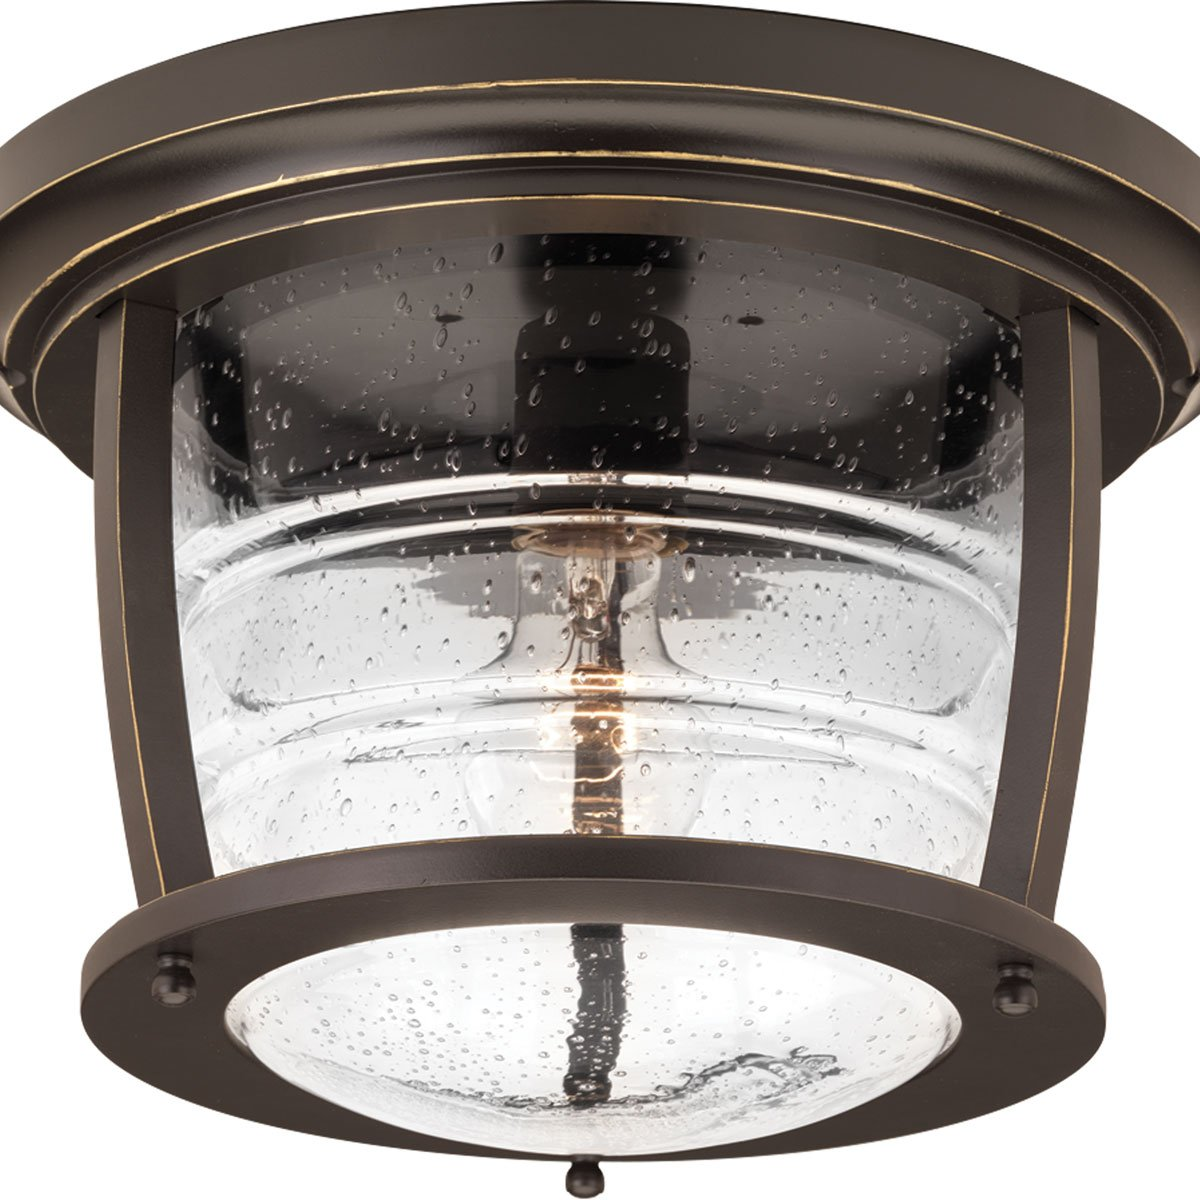 Progress Lighting P5638-108 Traditional/Casual 1-100W Med Outdoor Ctc, Oil Rubbed Bronze by Progress Lighting